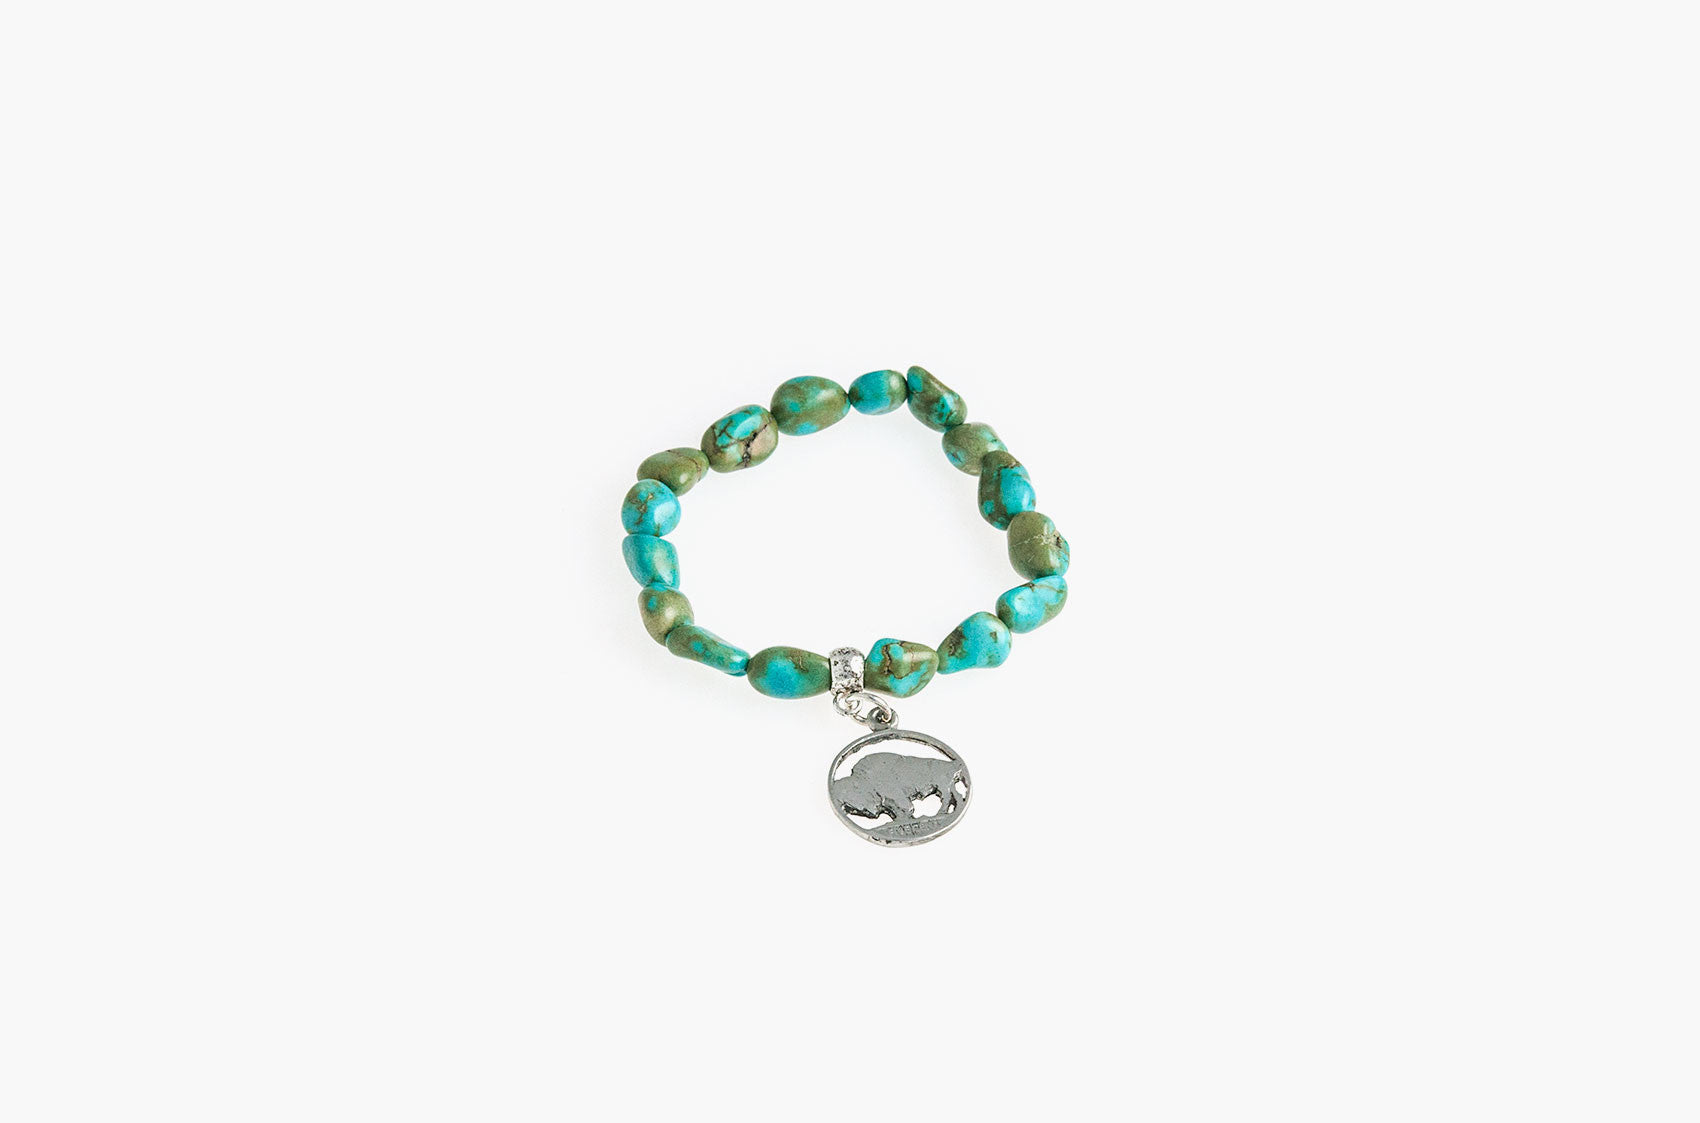 Turquoise nuggets with buffalo charm bracelet